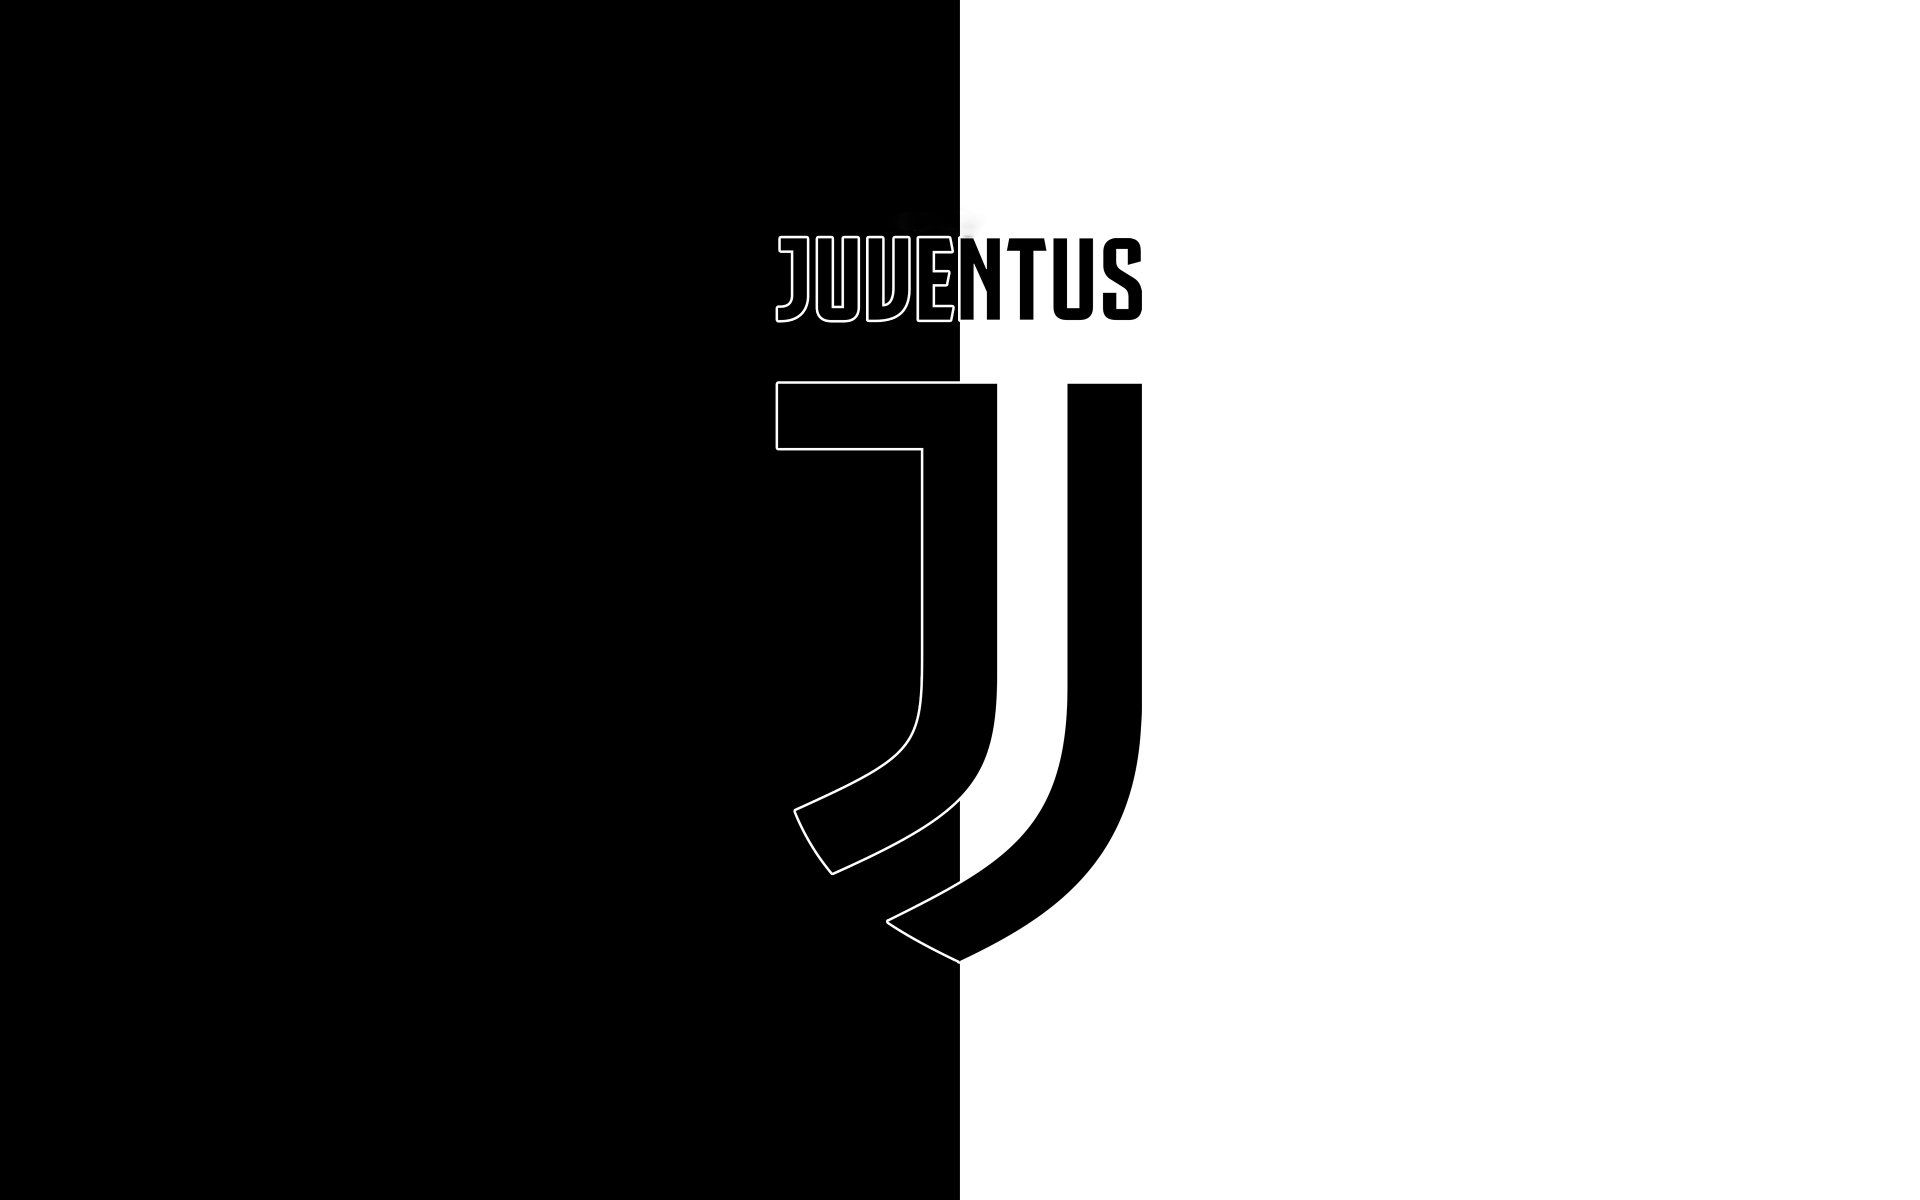 Pin On Logo Wallpaper Juventus